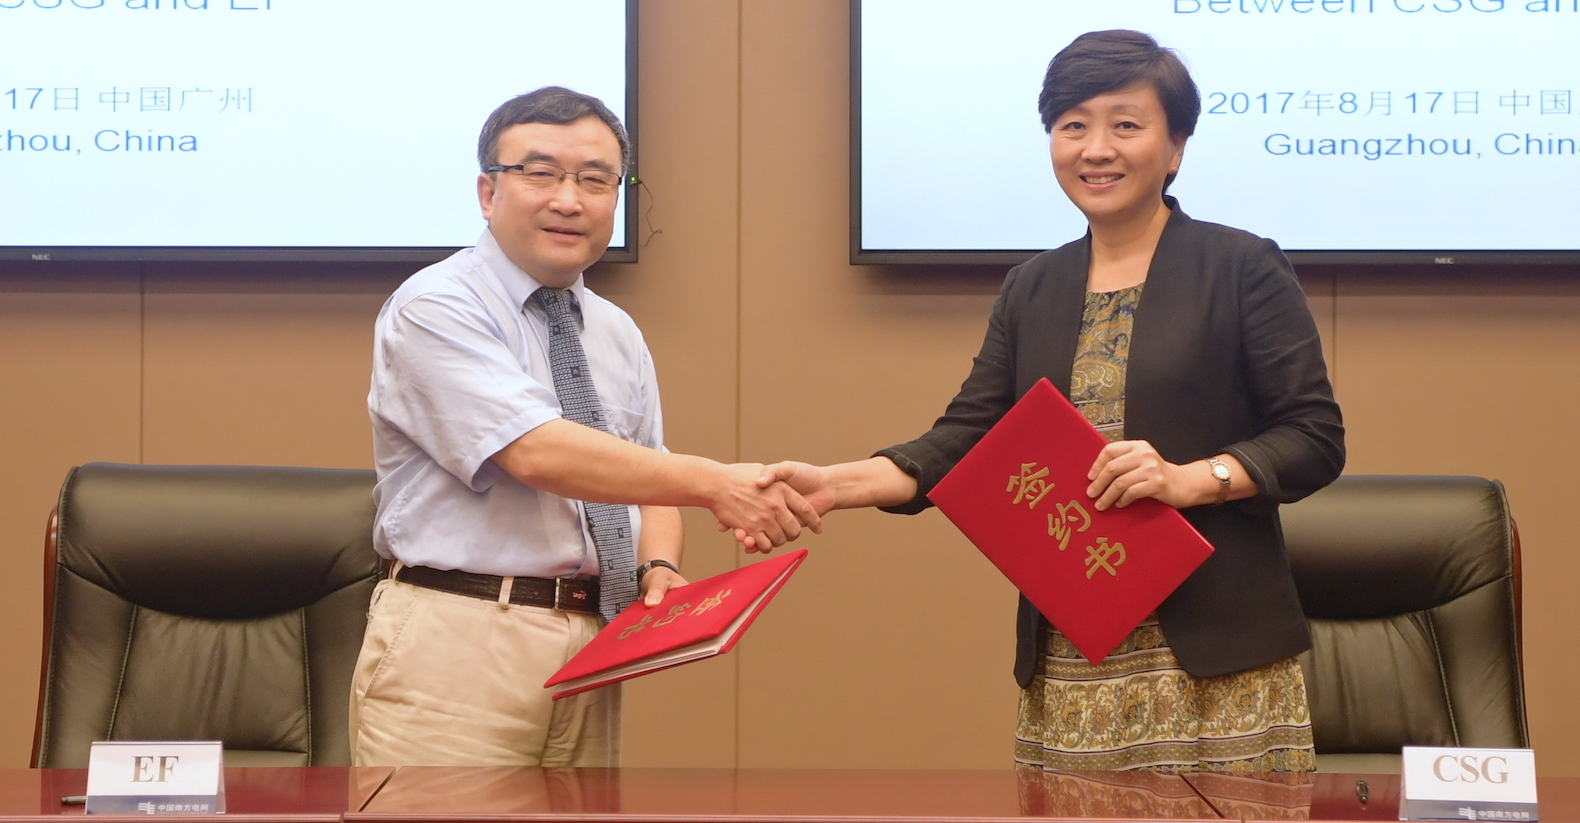 EF China and China Southern Power Grid Signed a MOU